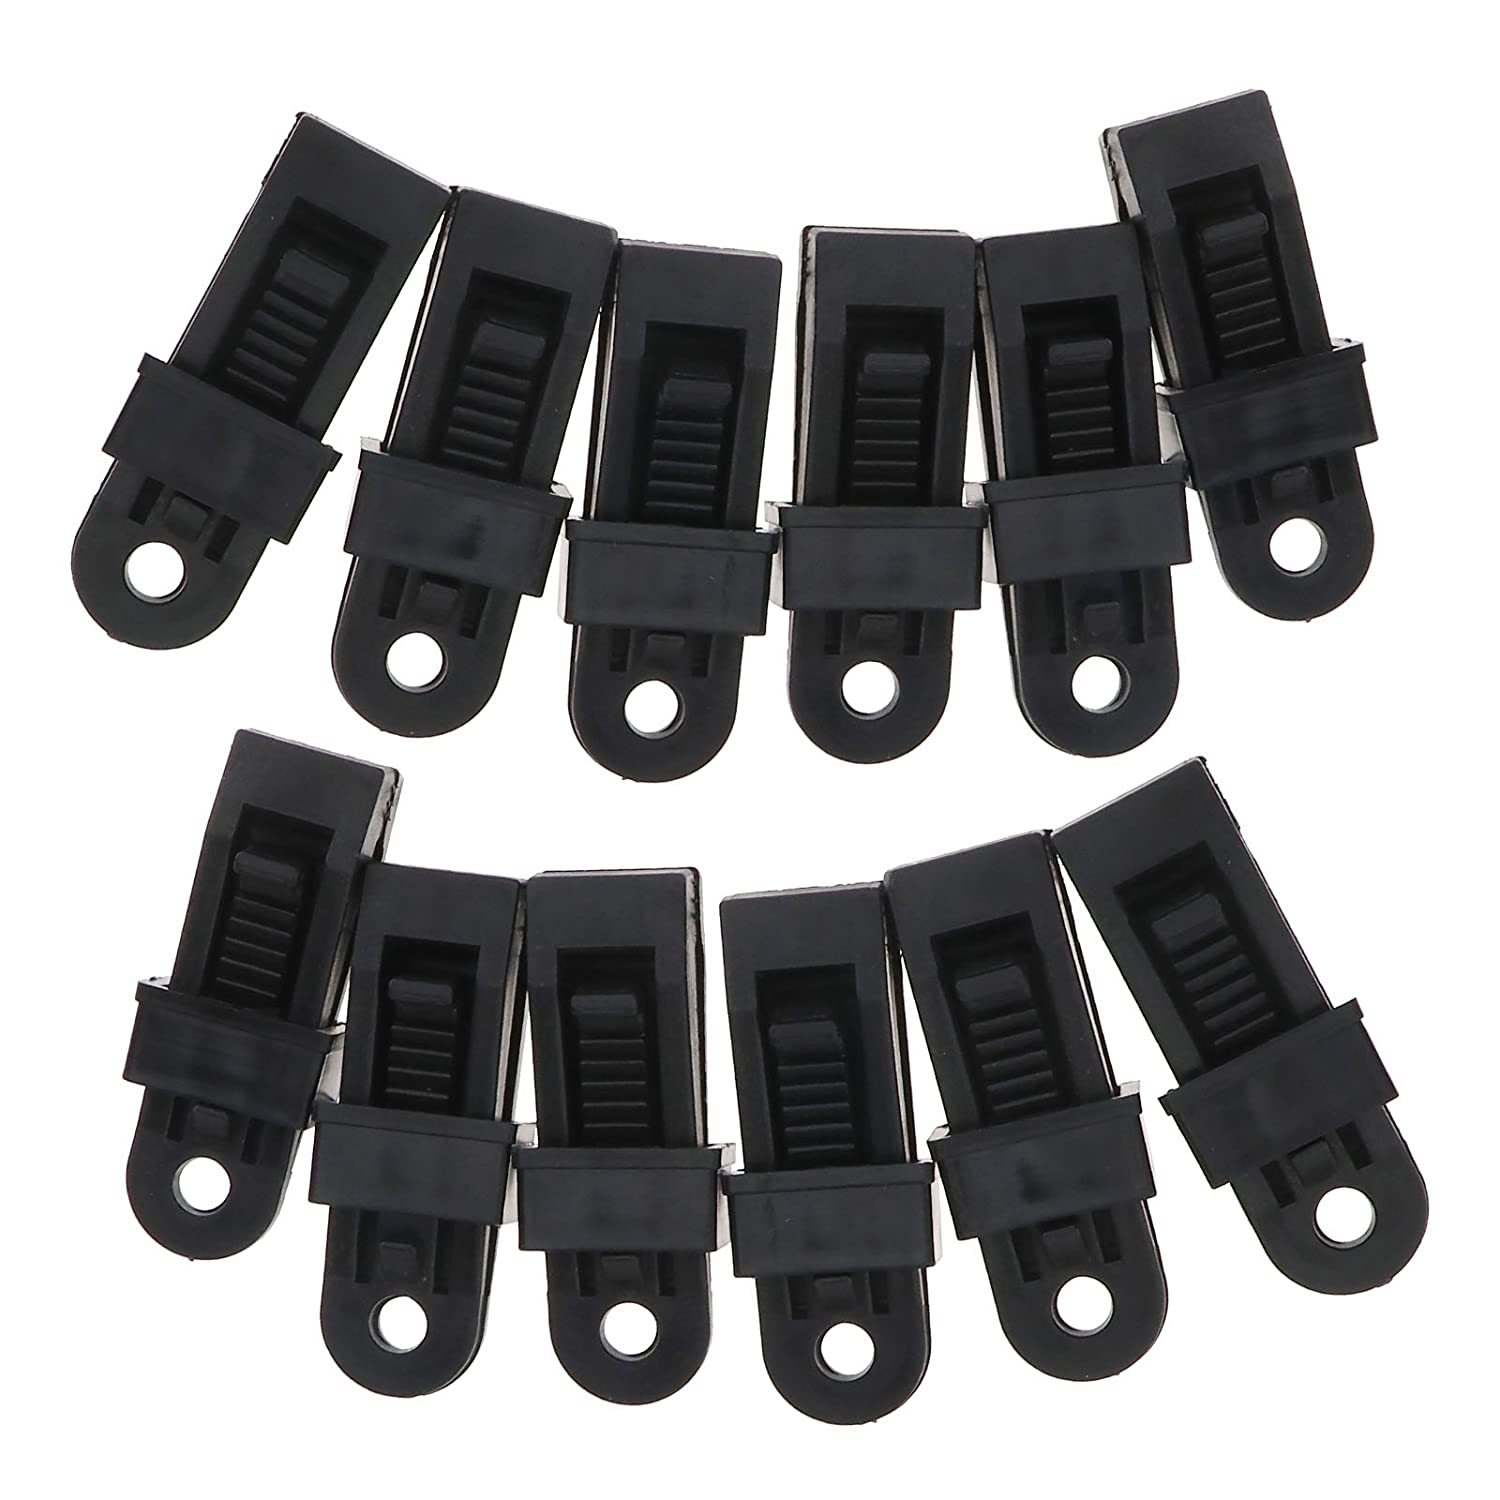 Micro Trader 24Pcs Tarp Clips Heavy Duty Reusable Awning Clamp Tarp Clips Set Camping Survival Tent Canopy Accessories